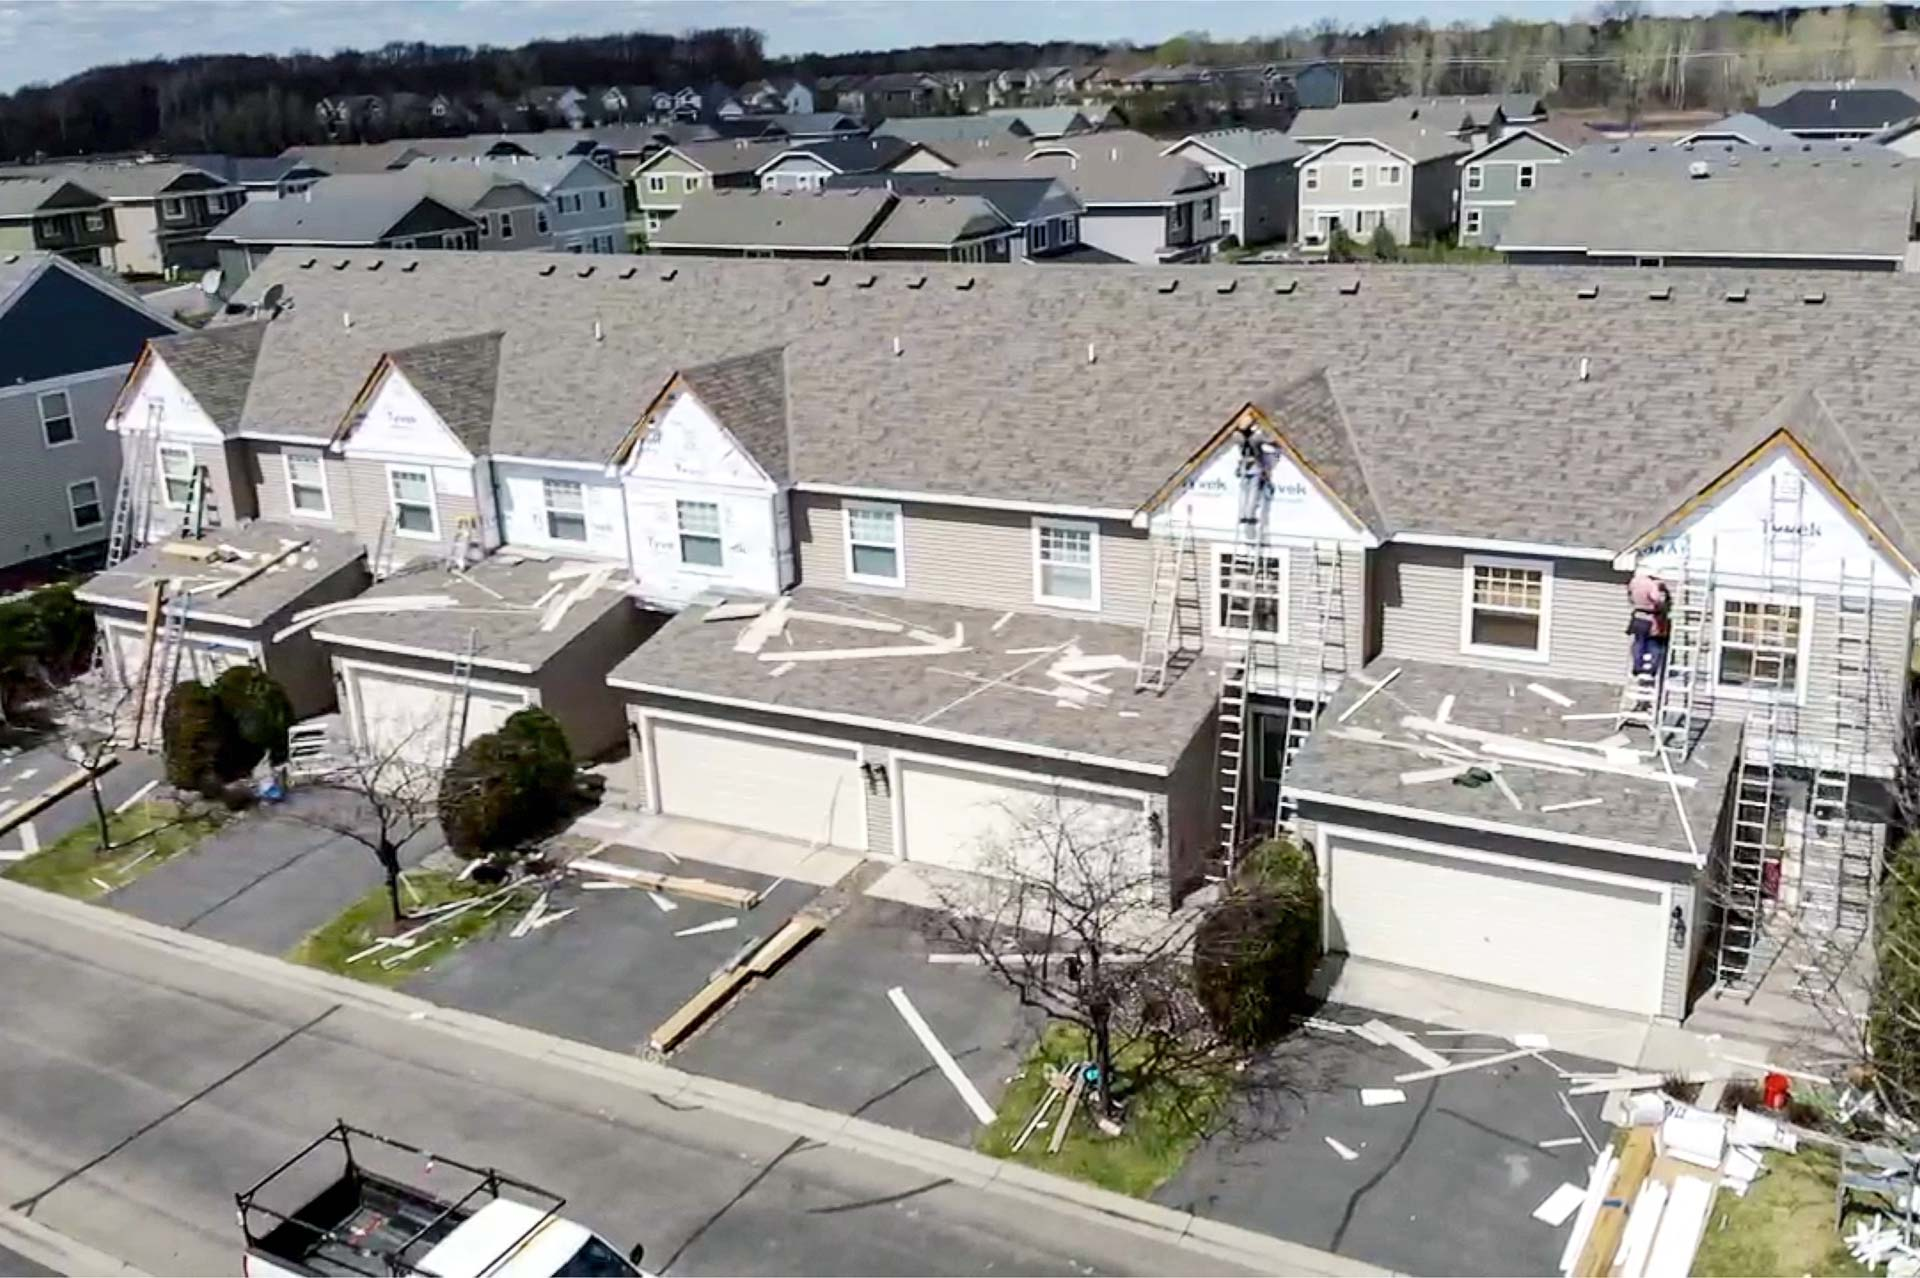 multifamily hoa townhouse siding replacement